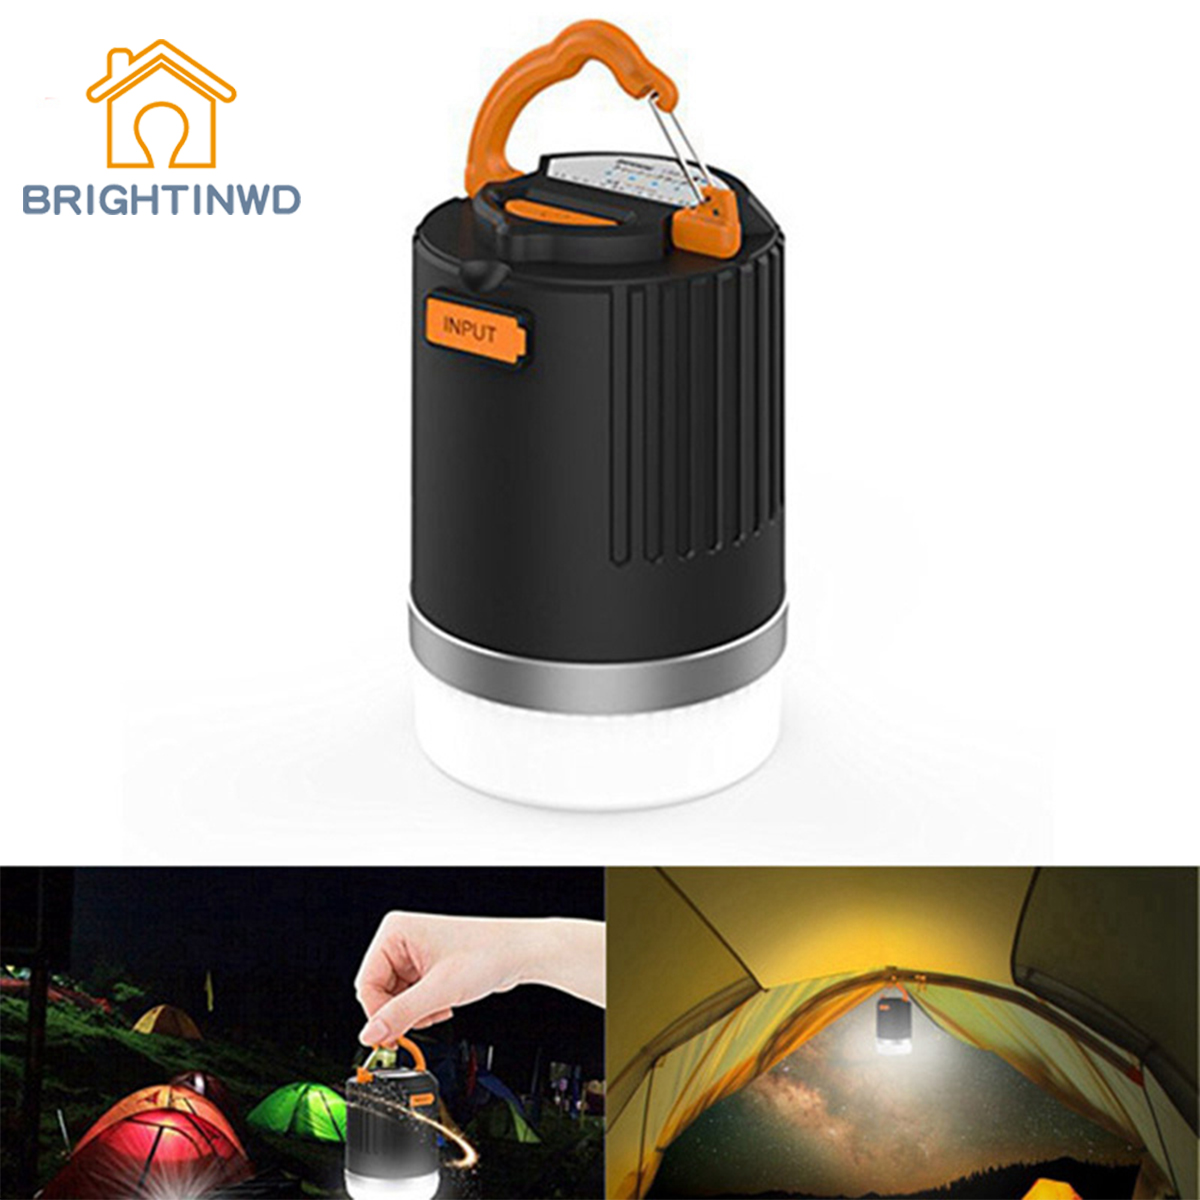 BRIGHTINWD Portable Outdoor Camping Lantern USB Rechargeable LED Light With 10400mAh Power Bank For Phone Charging Tent Lanterns noontec giant 10400mah usb mobile power bank white